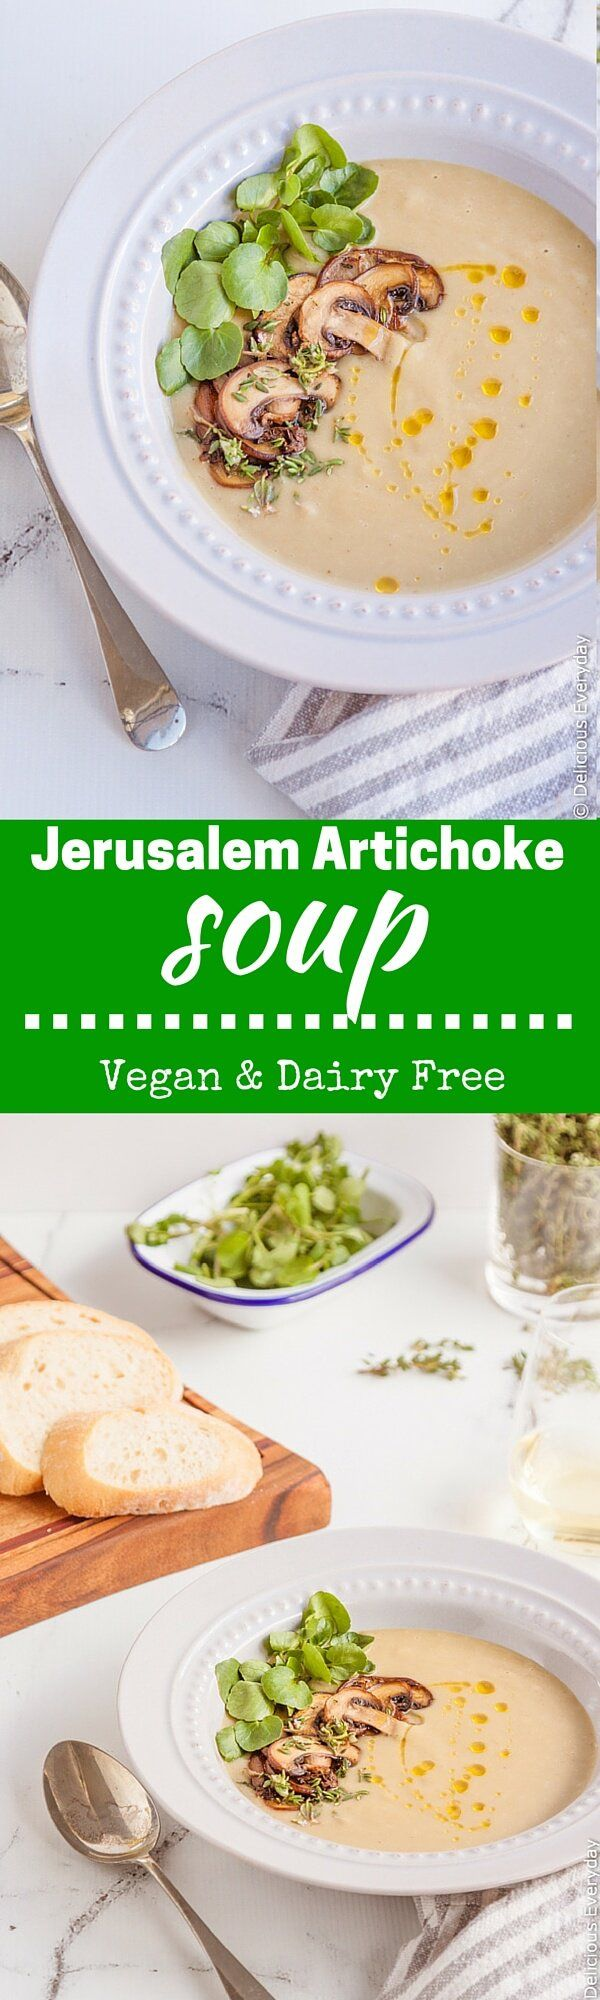 This velvety smooth VEGAN Jerusalem Artichoke soup is topped with mushrooms and watercress for a complete meal in a bowl. Get the recipe at deliciouseveryday.com